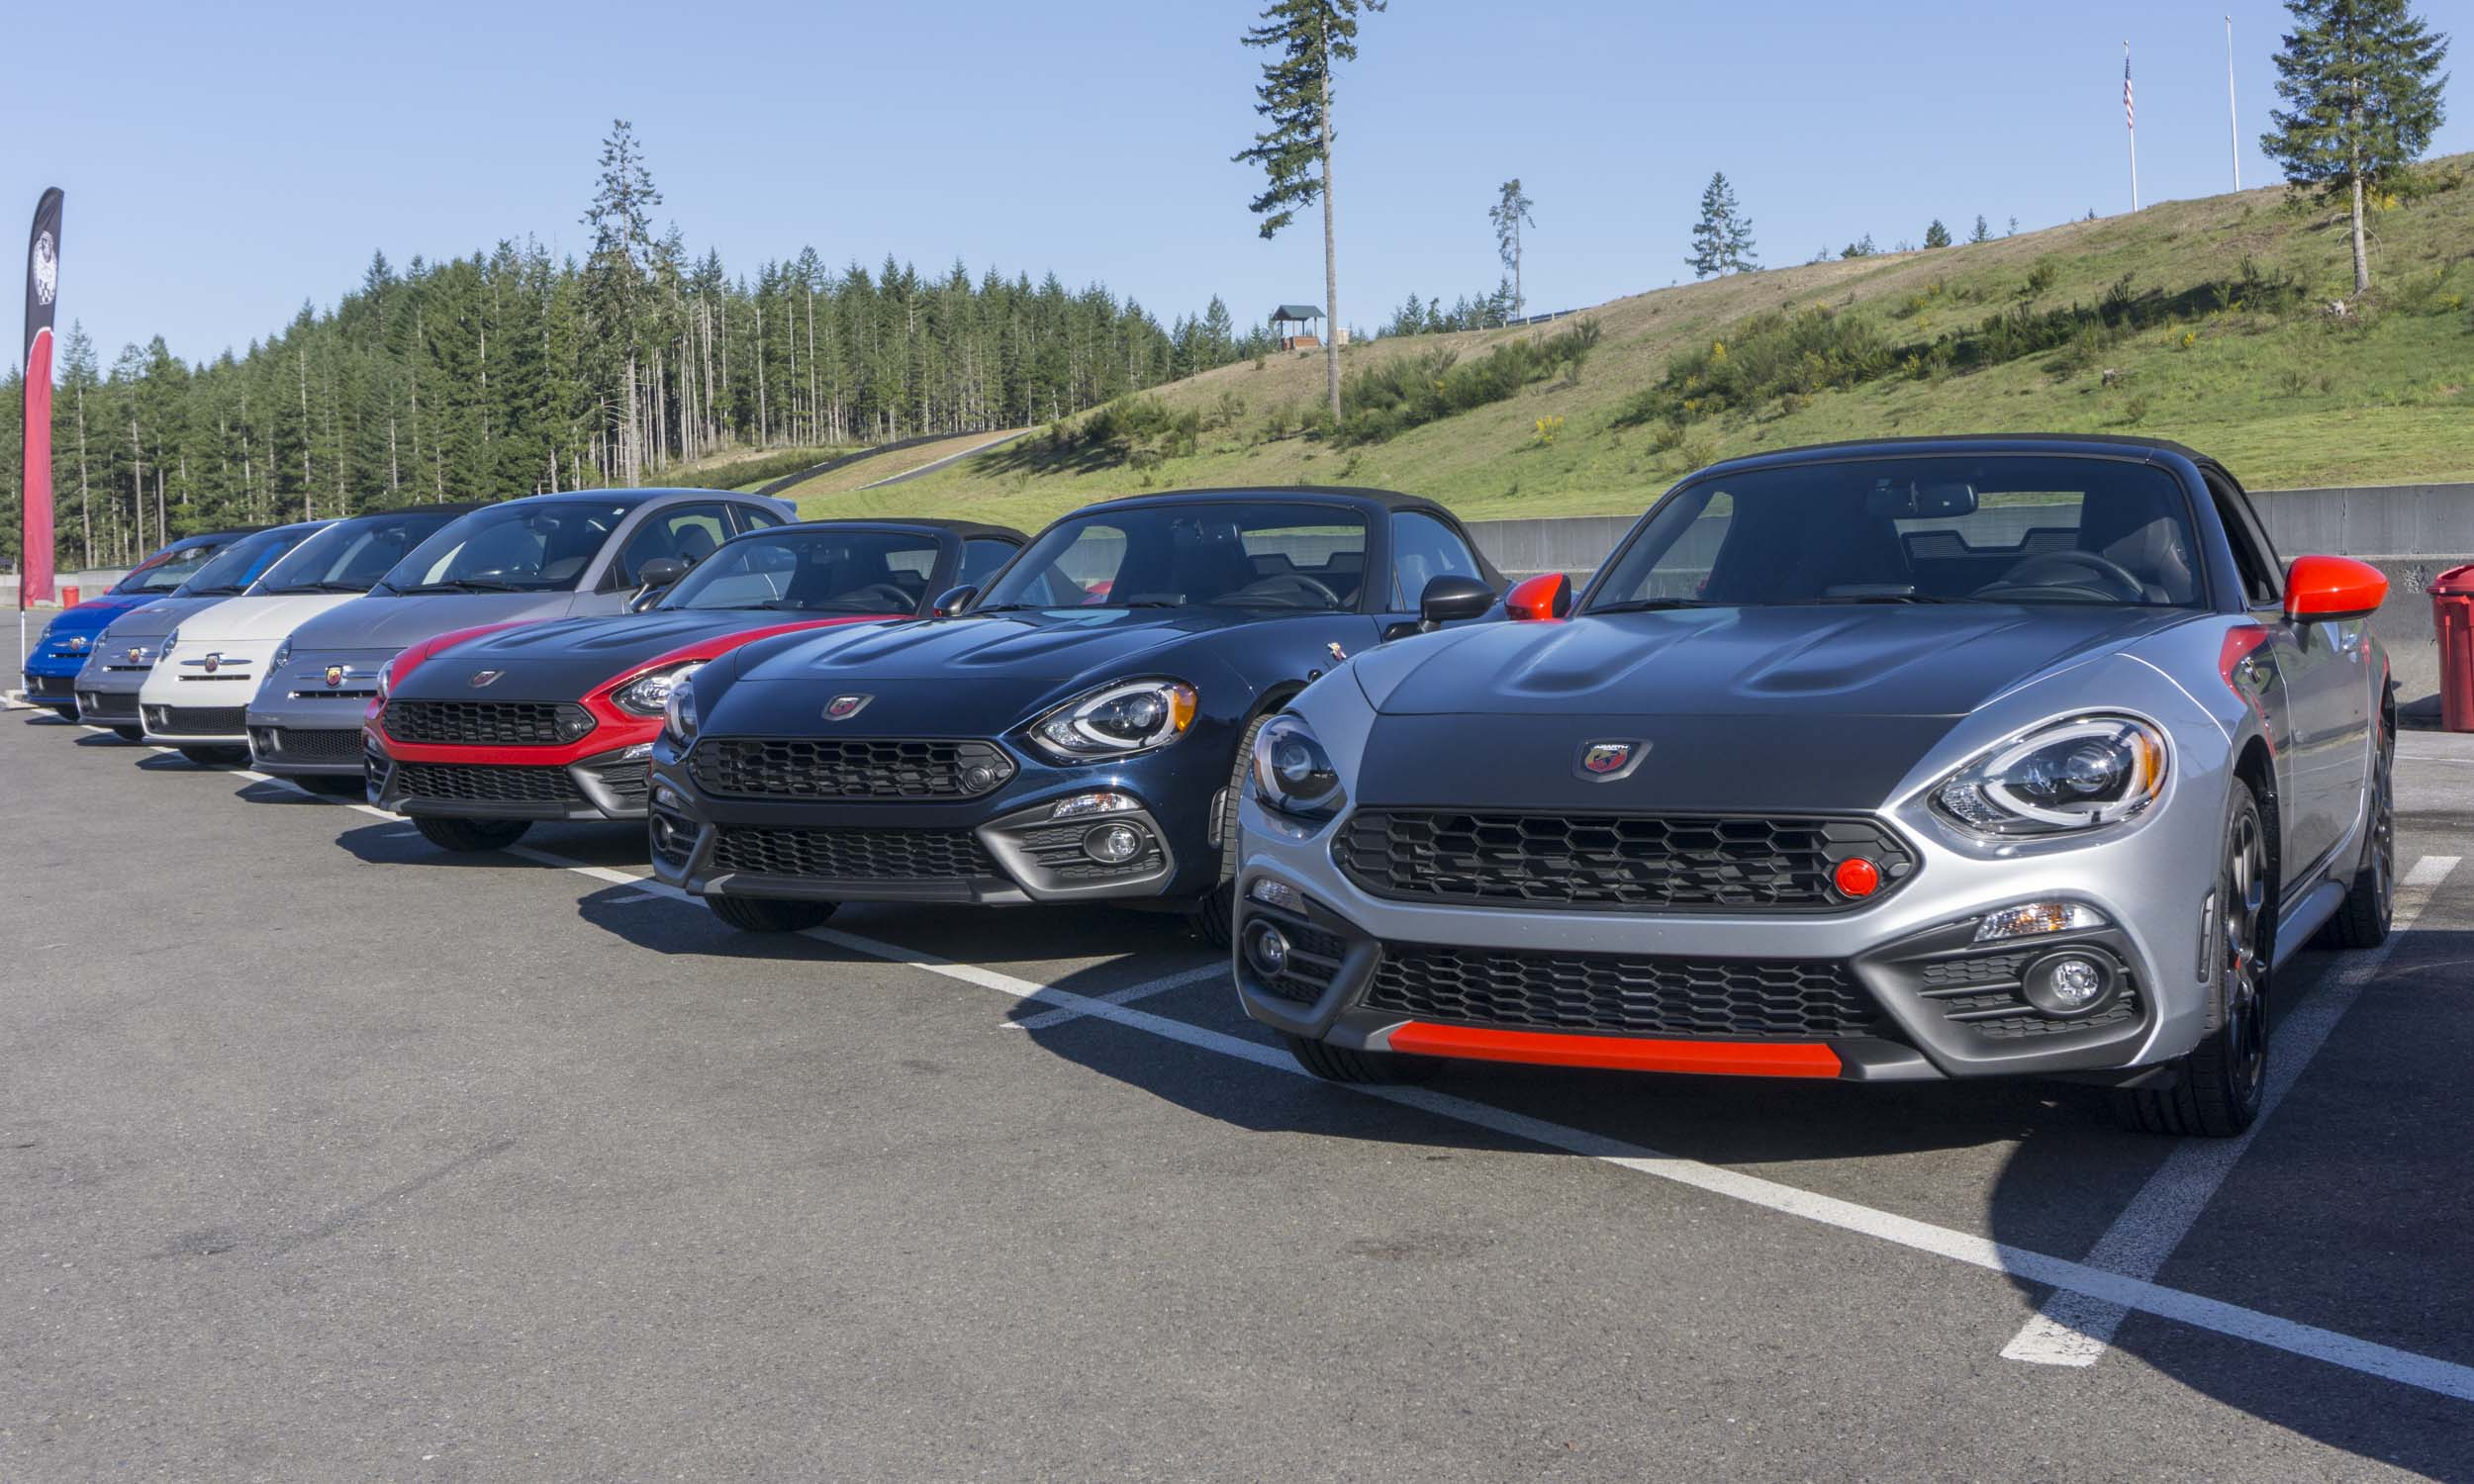 Small Cars, Big Fun: Track Day with Fiat Abarth